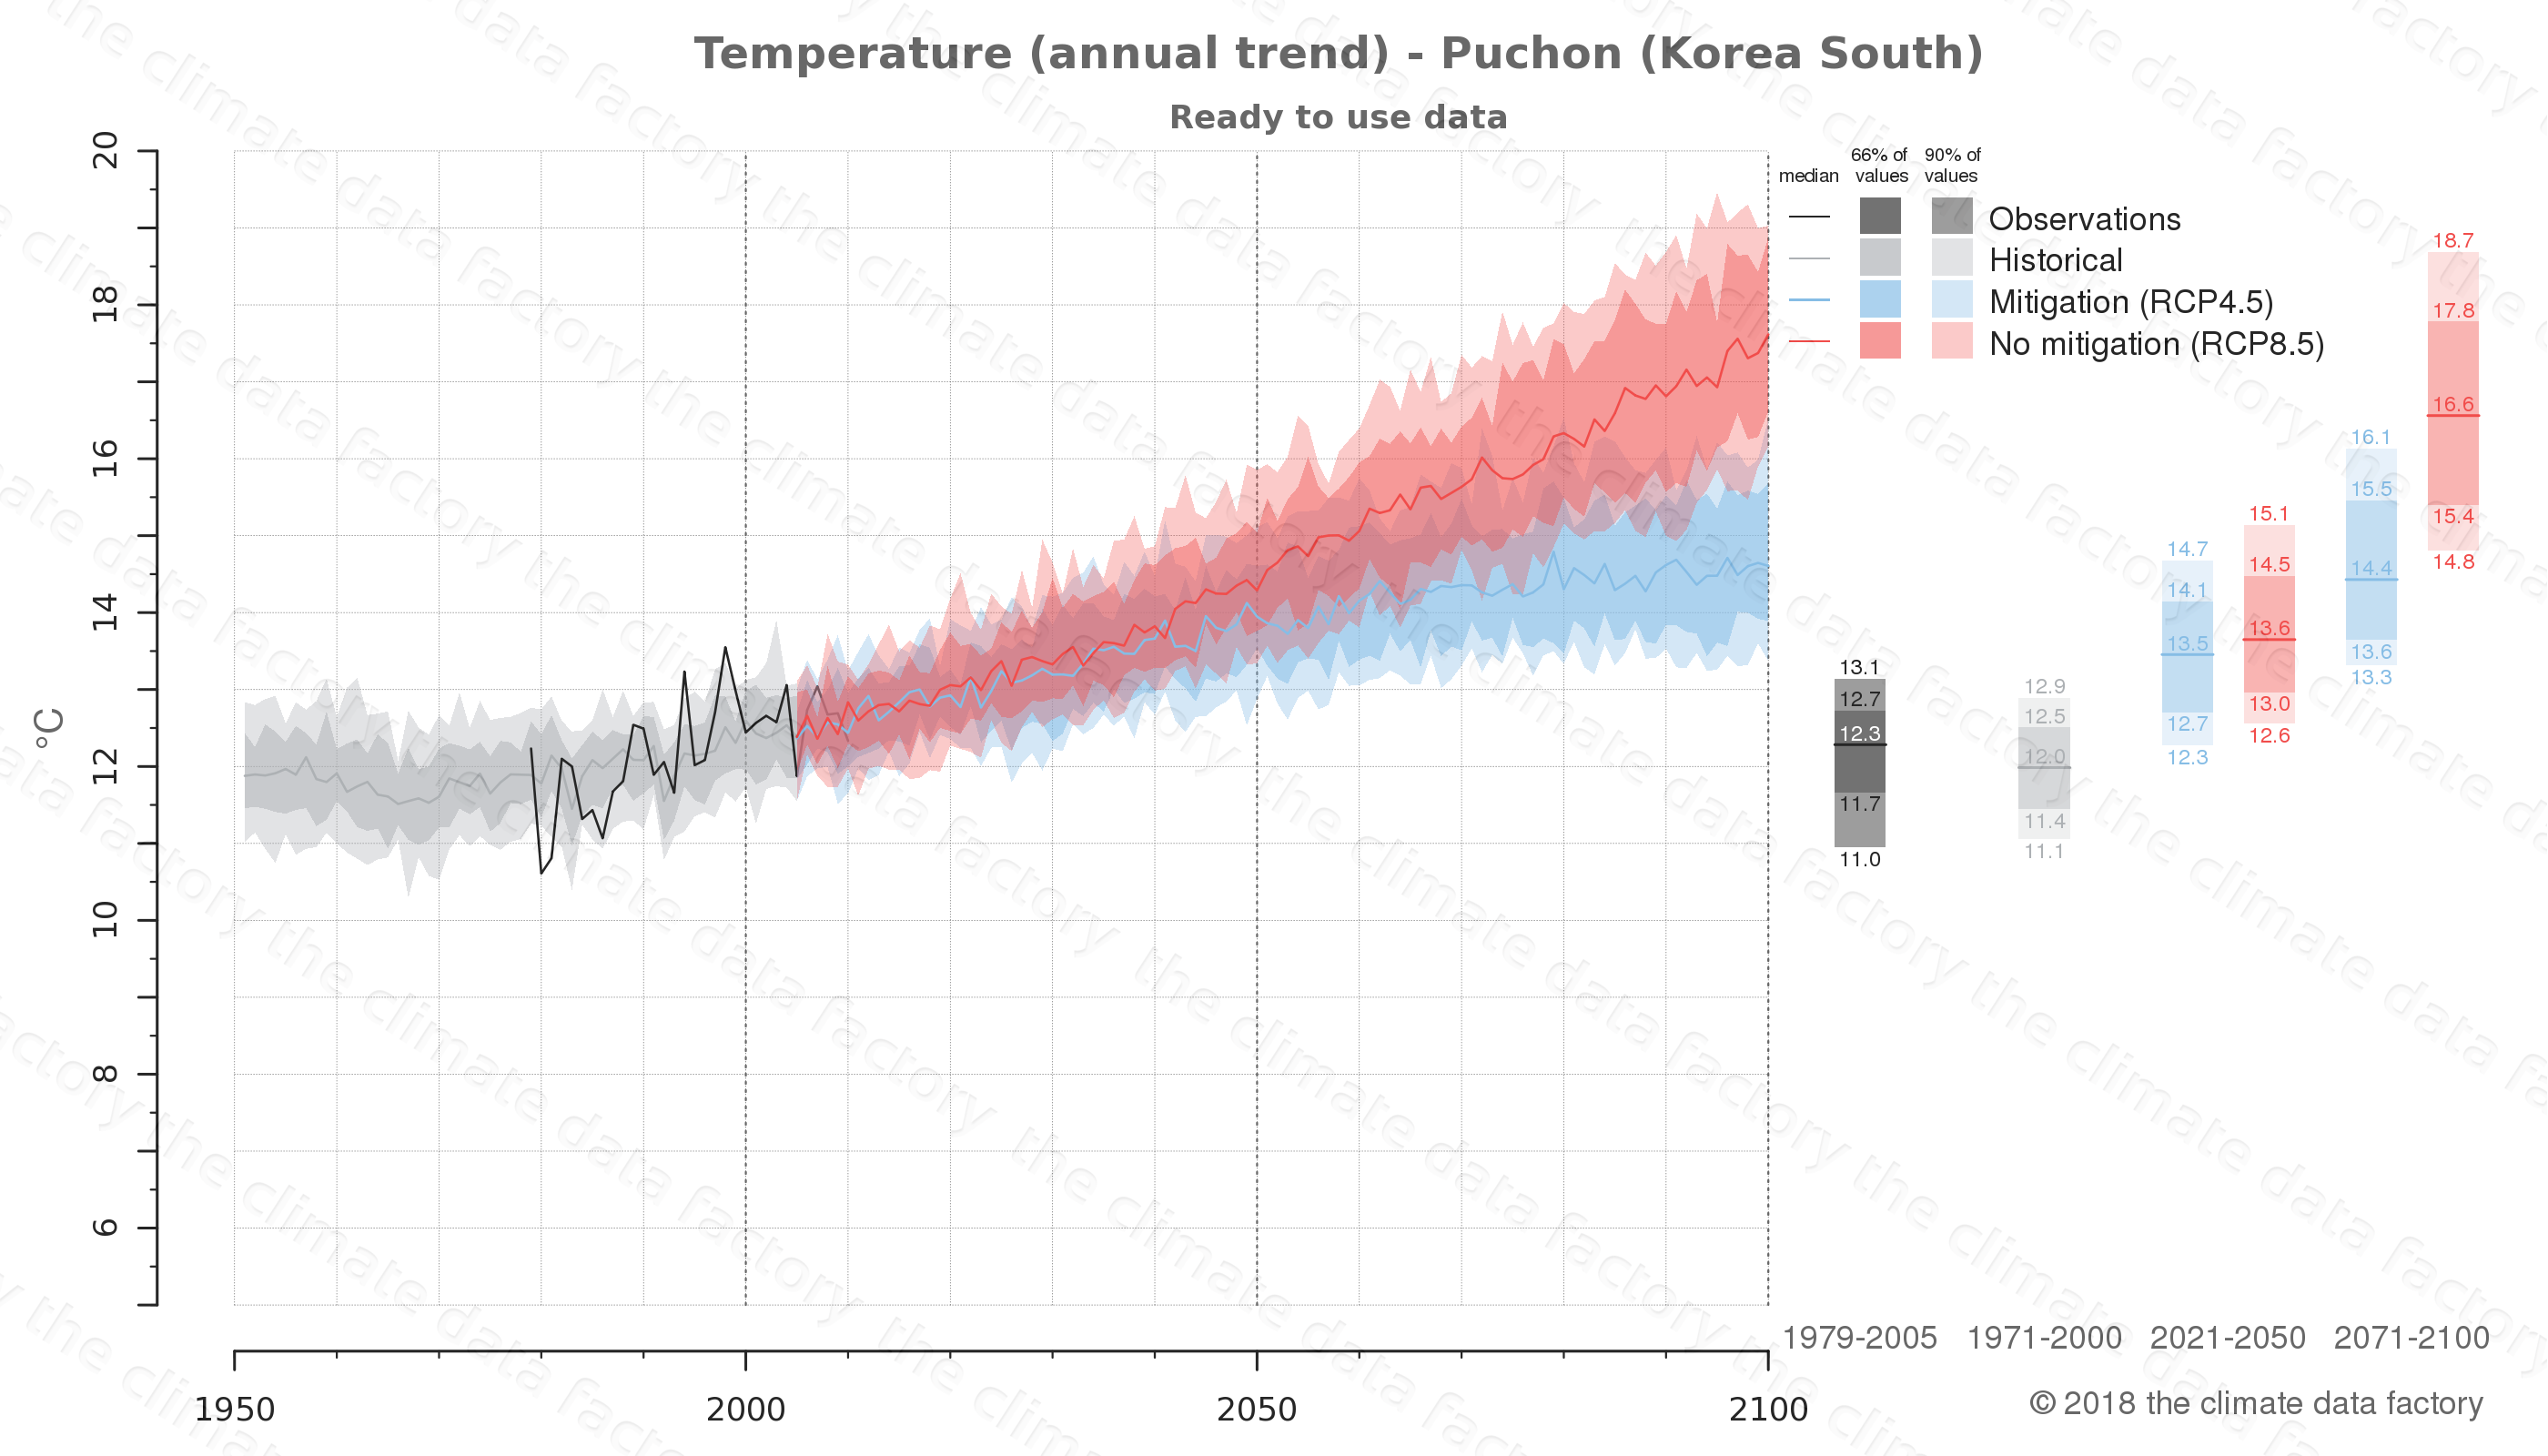 climate change data policy adaptation climate graph city data temperature puchon south korea